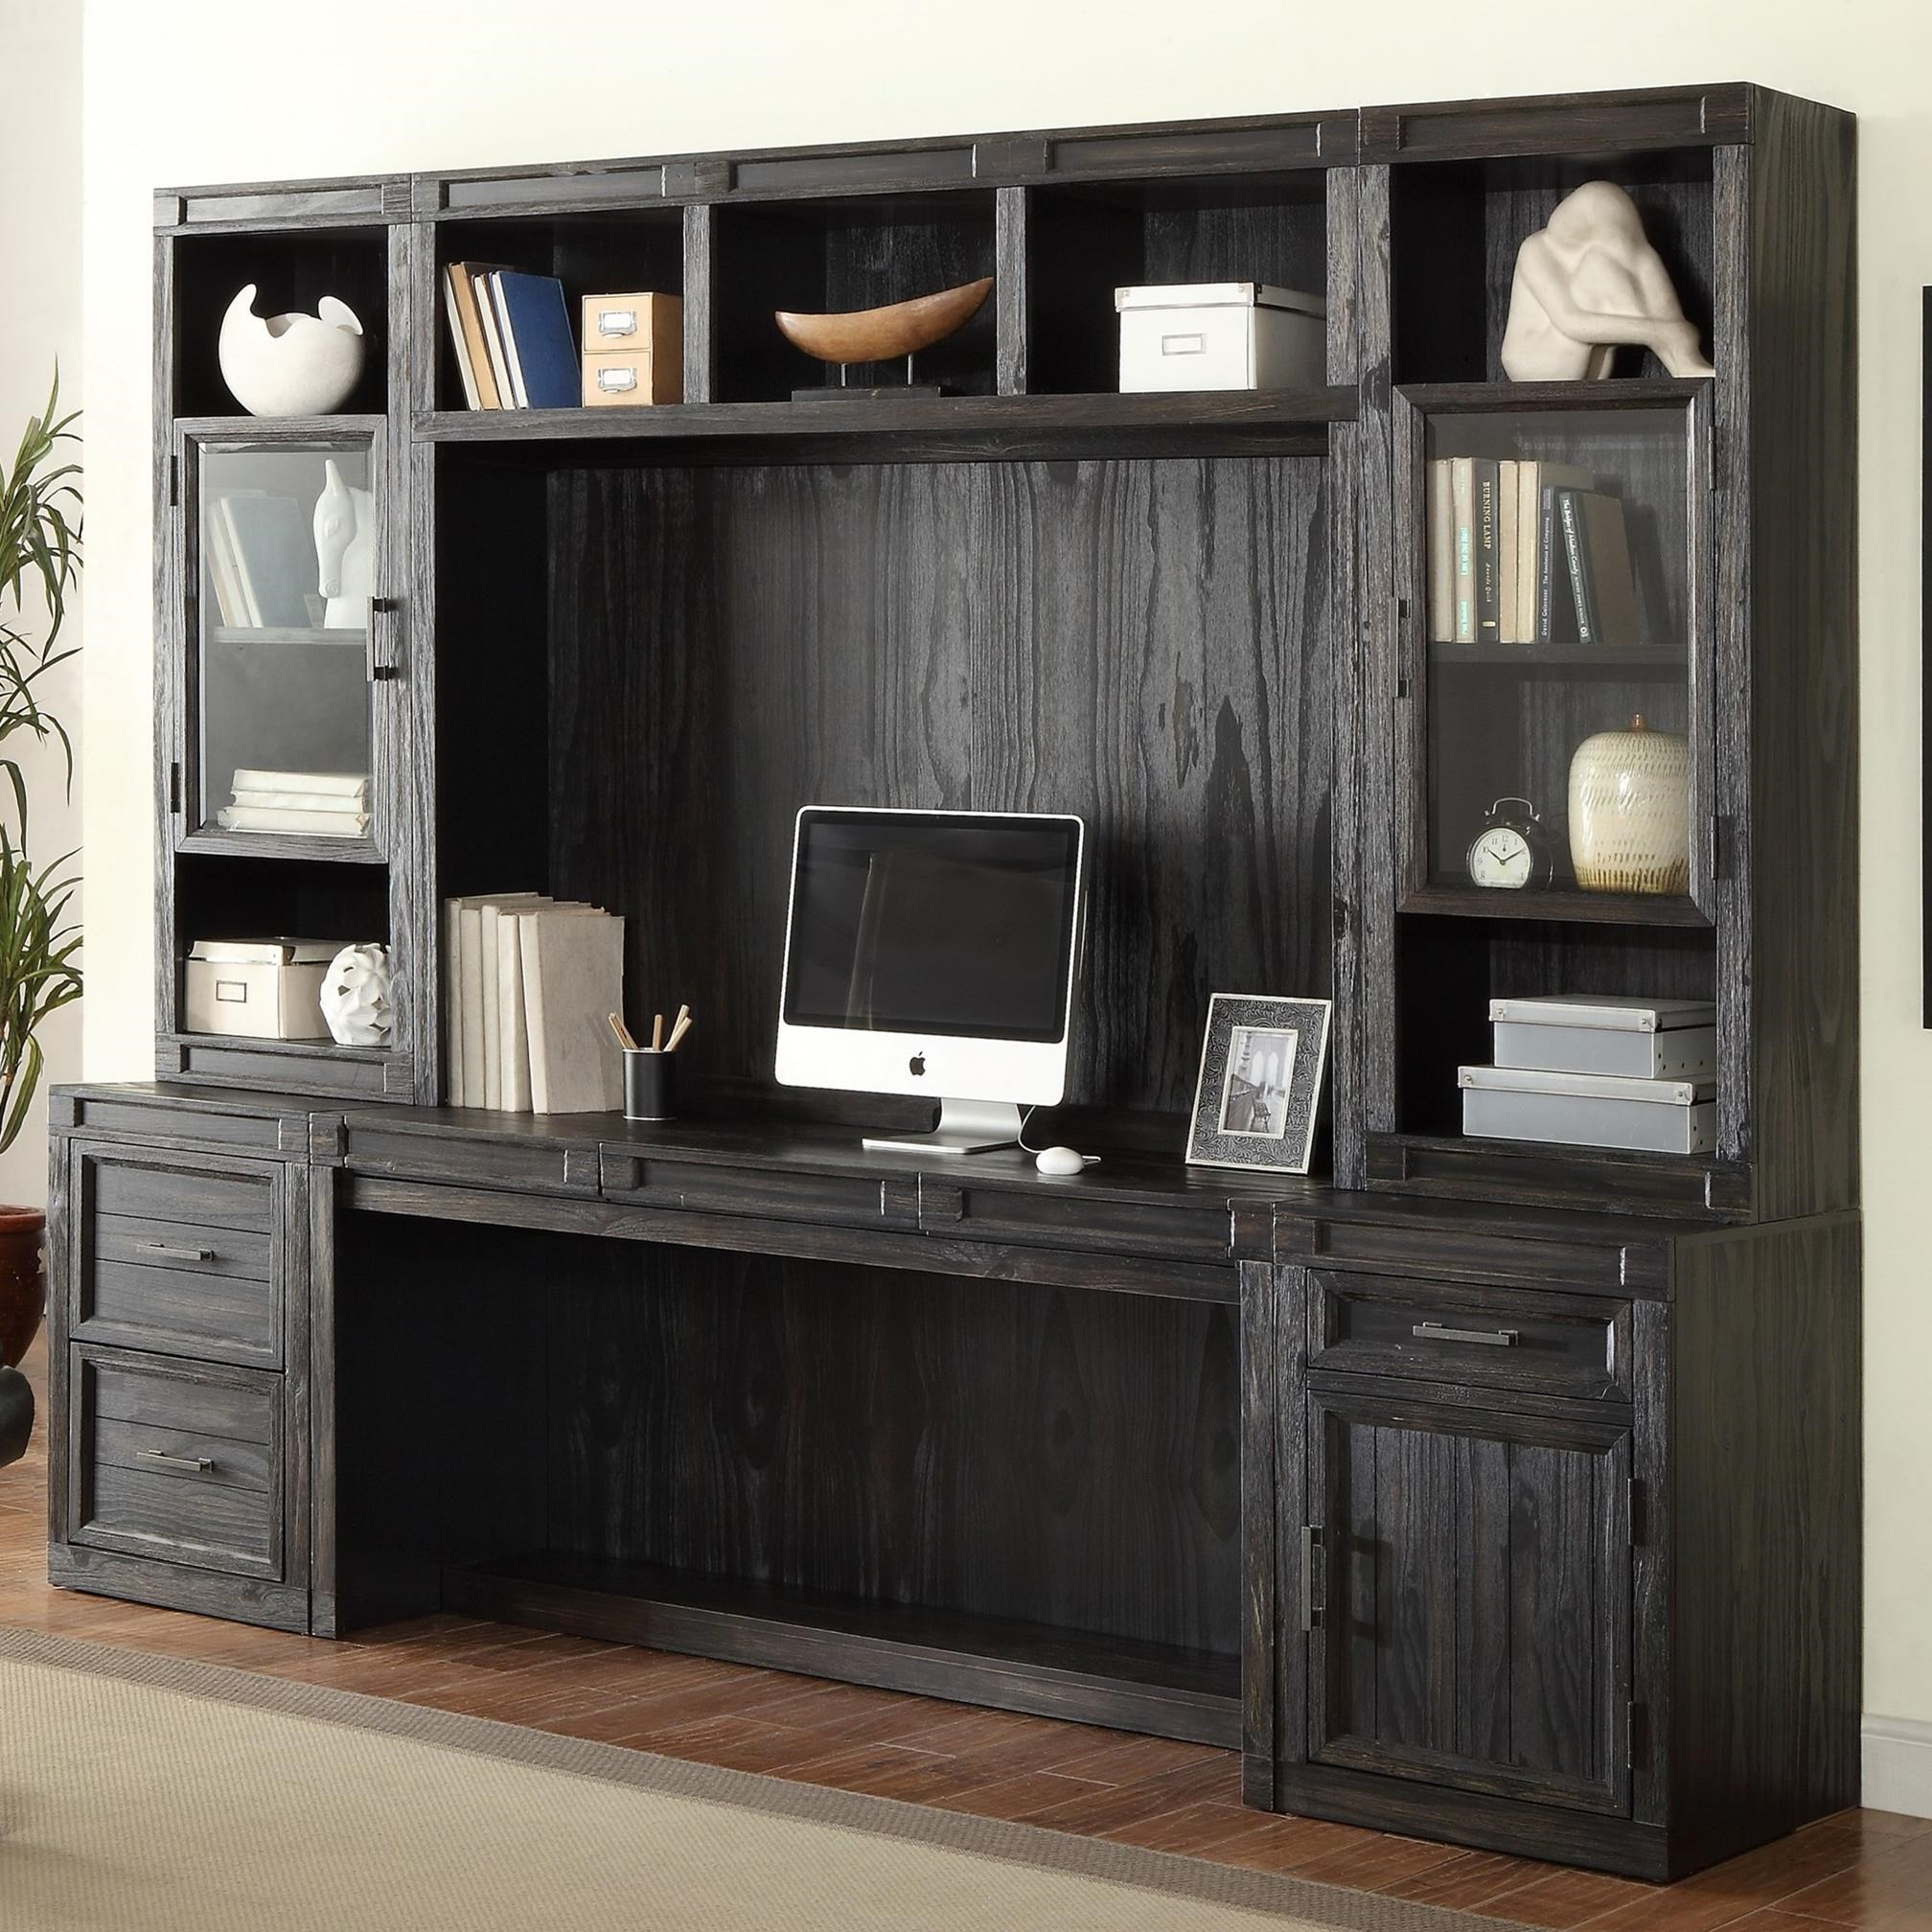 Parker House Hudson 6 Piece Desk and Hutch Set - Item Number: HUD-915+920+930+905H+2x960T